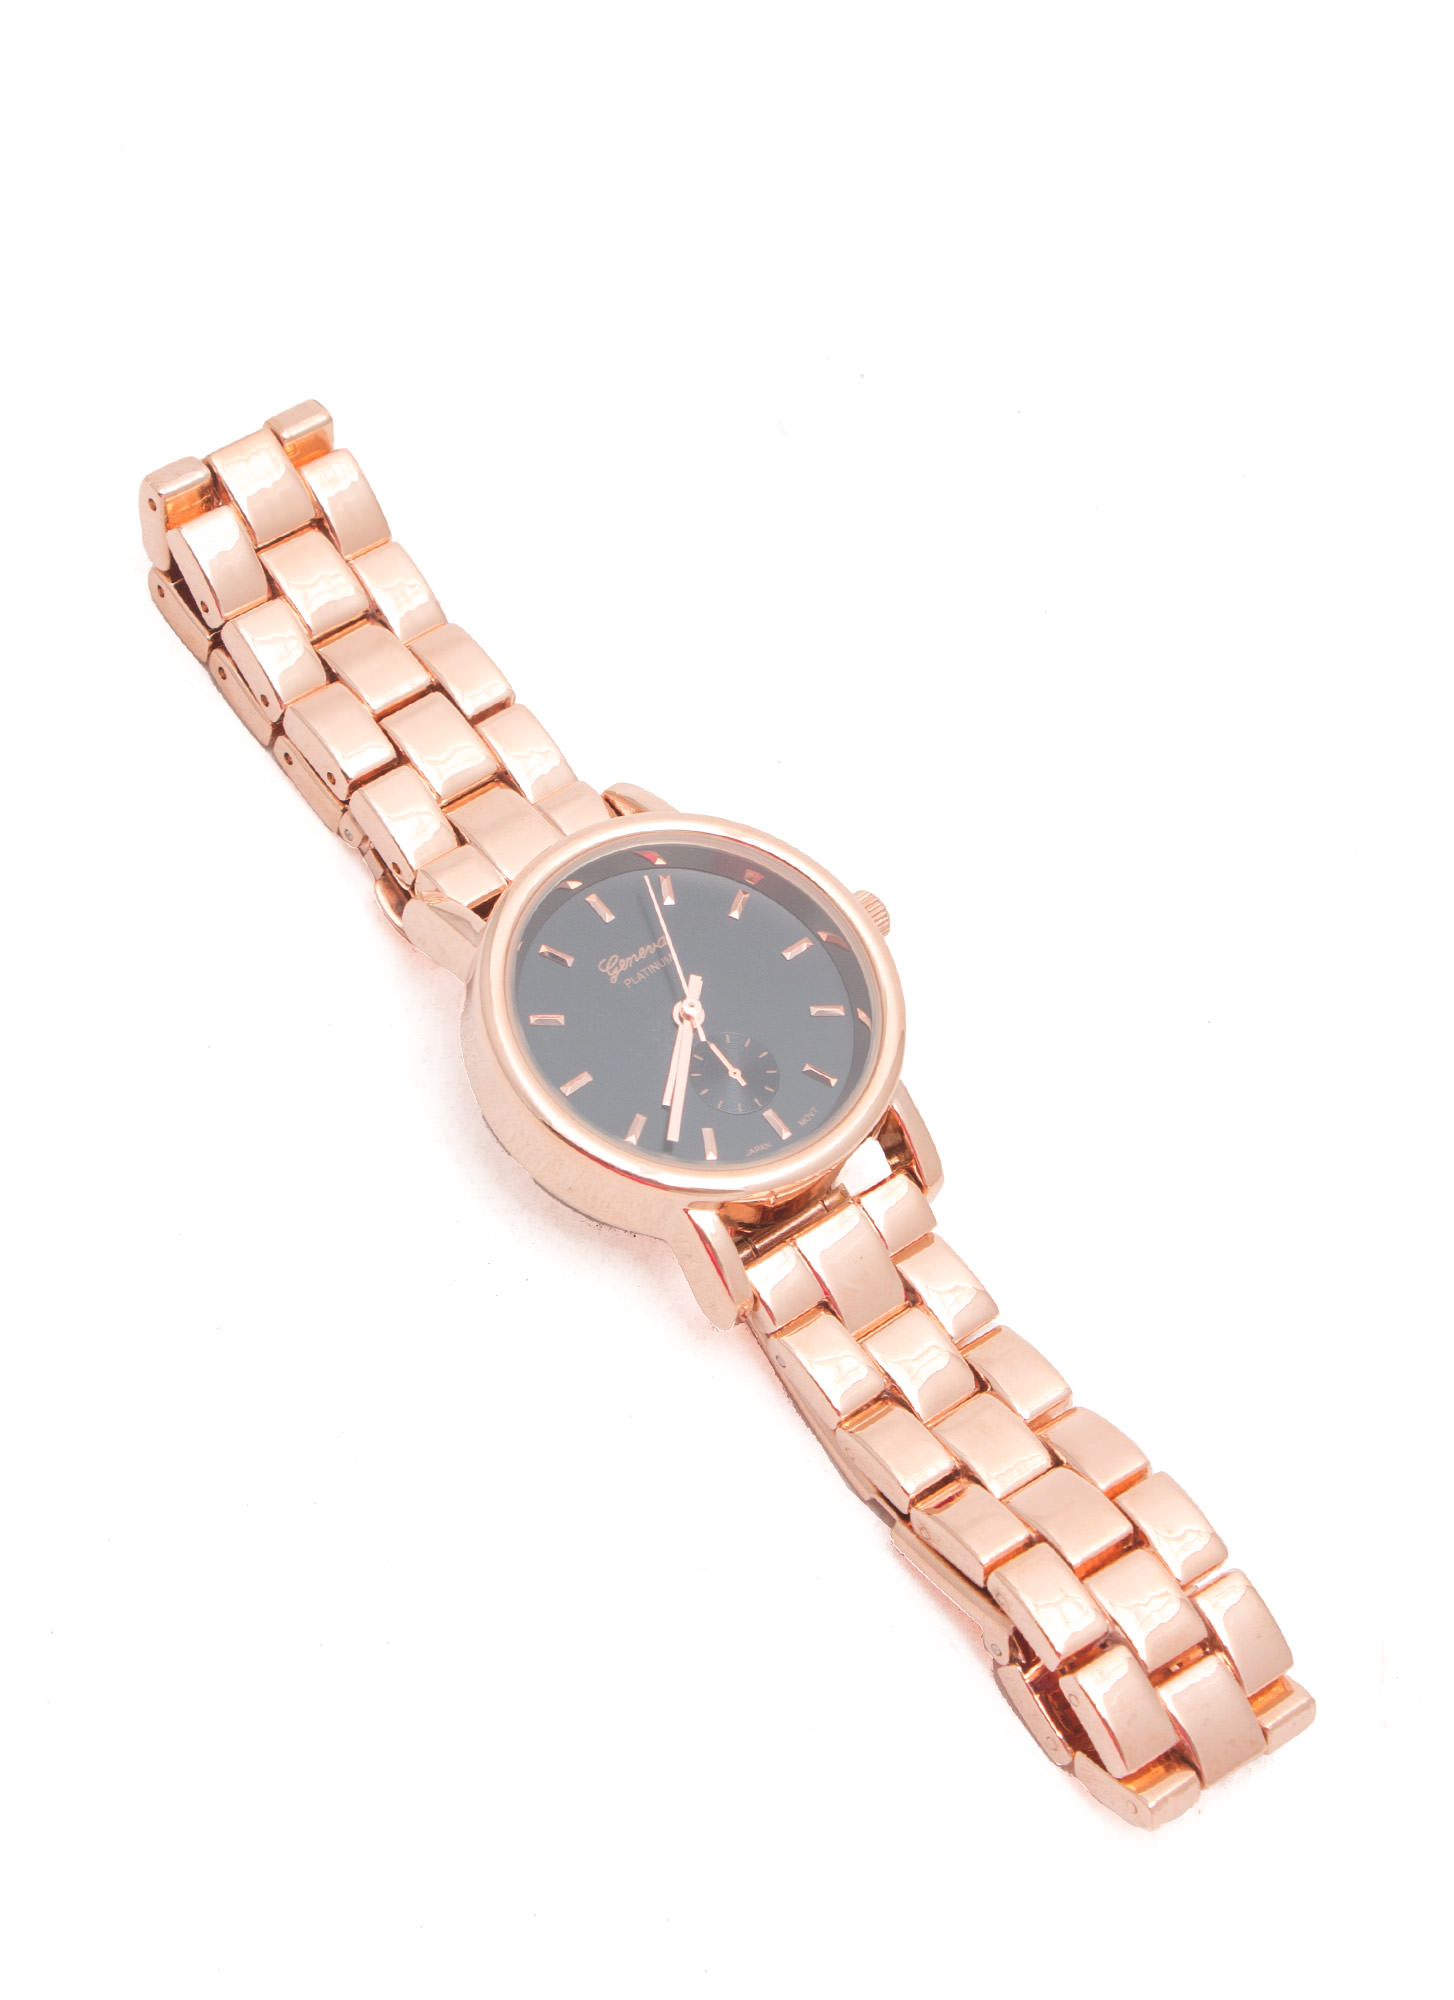 Simply Irresistible Brick Link Watch BLKROSEGLD